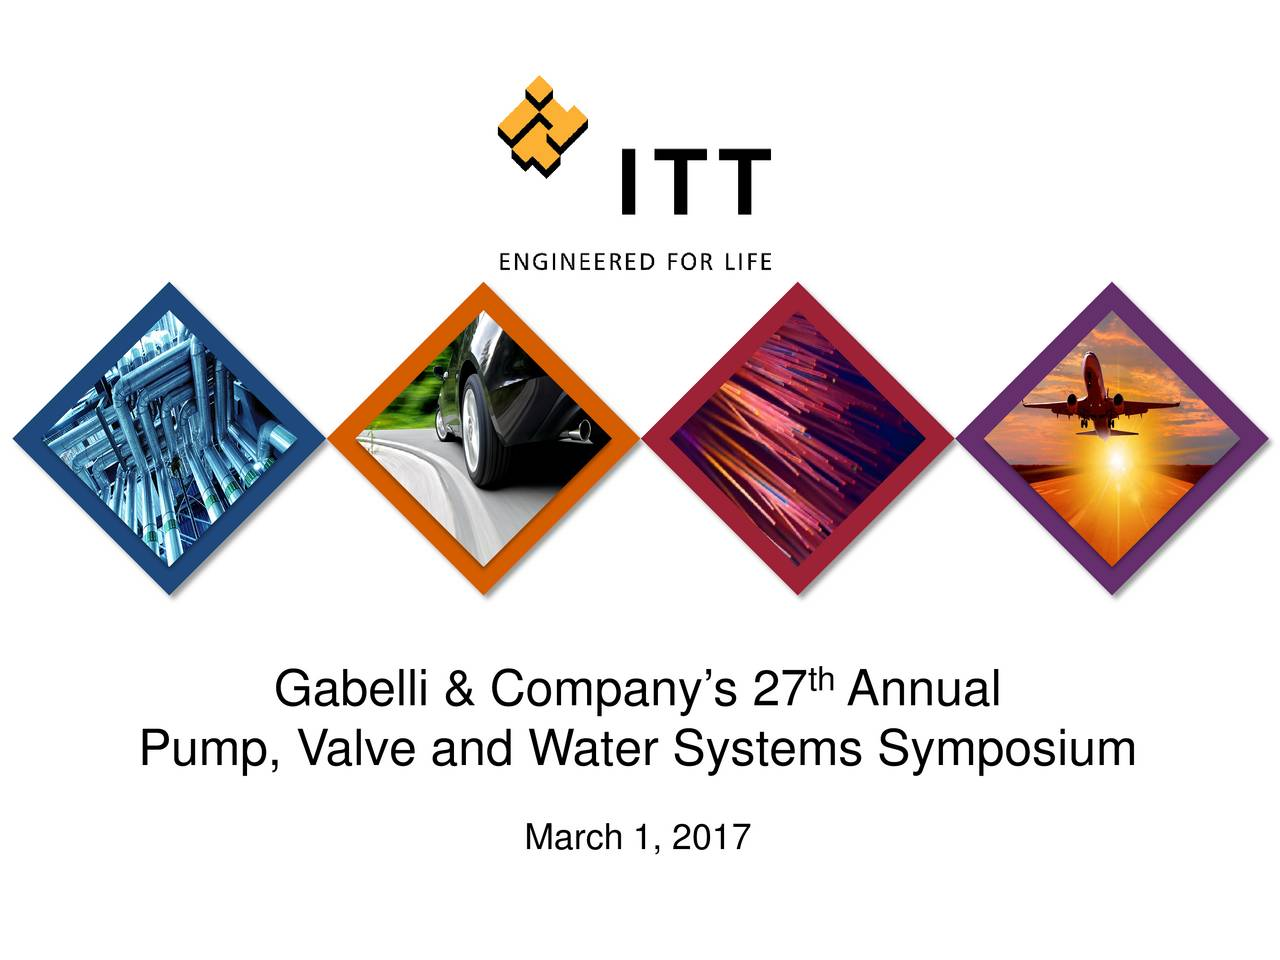 Pump, Valve and Water Systems Symposium March 1, 2017